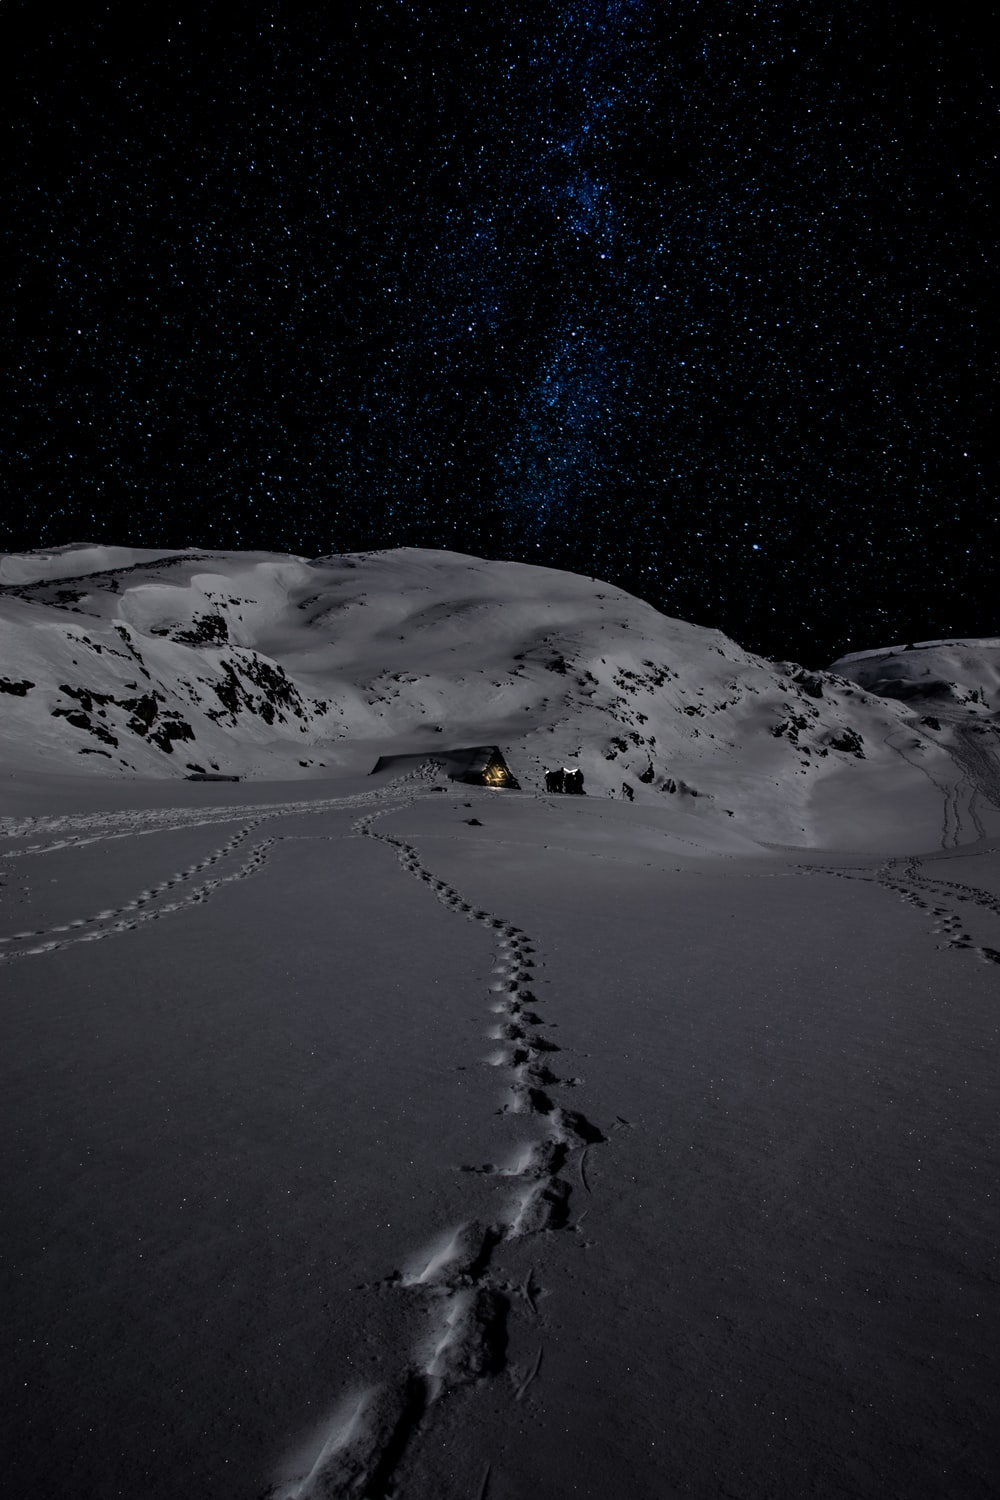 house on mountain in snow